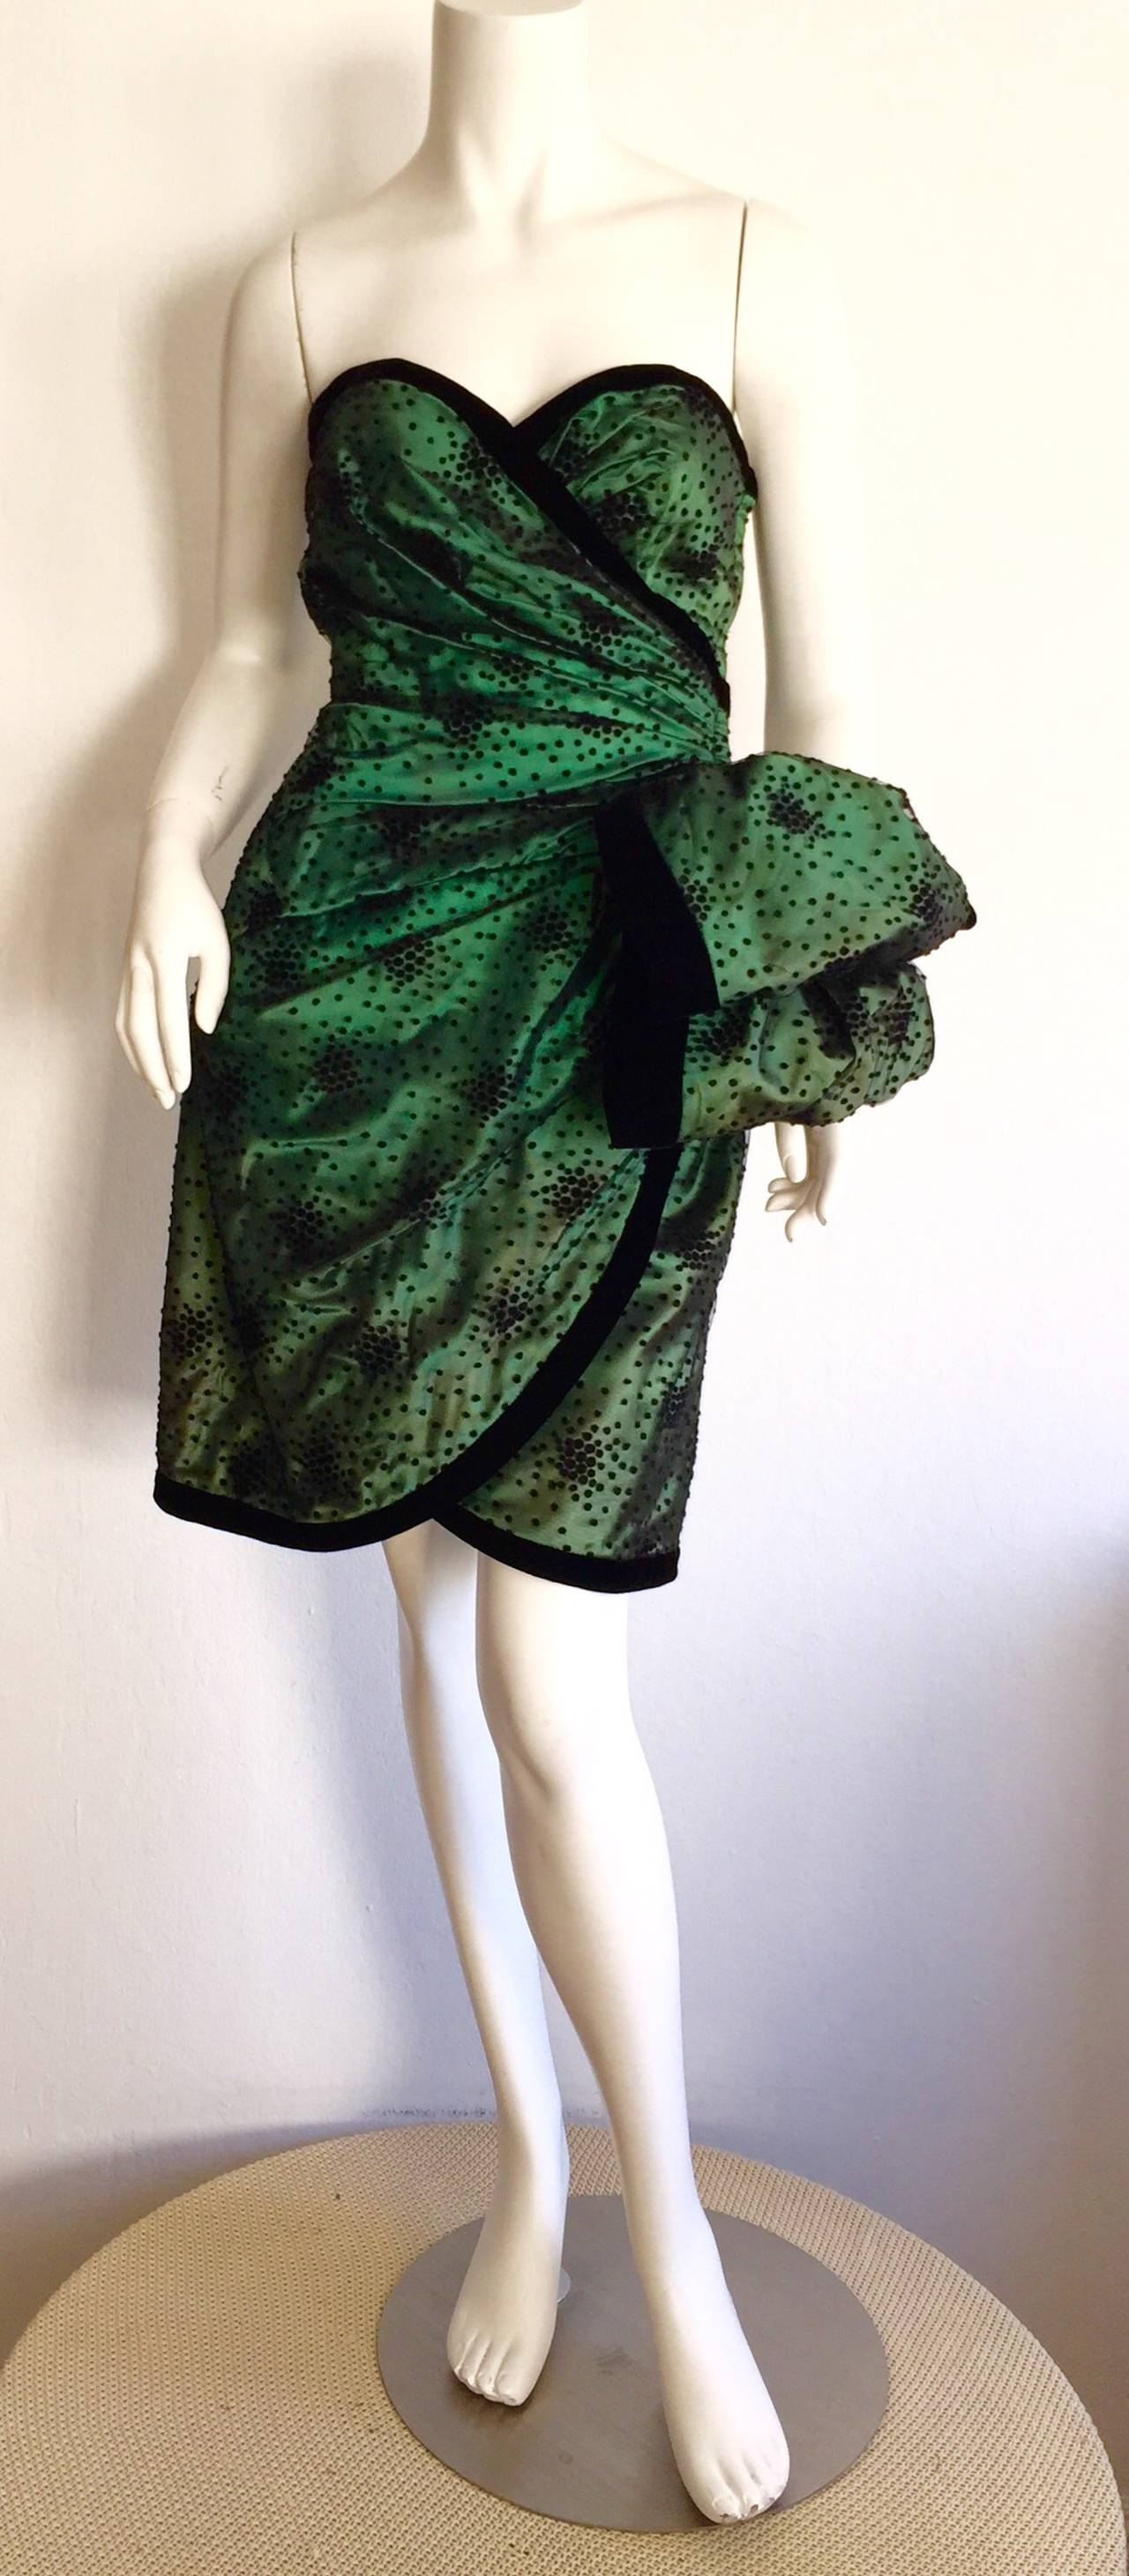 Incredible Vintage Victor Costa Bergdorf Goodman Green + Black Bow Dress 2